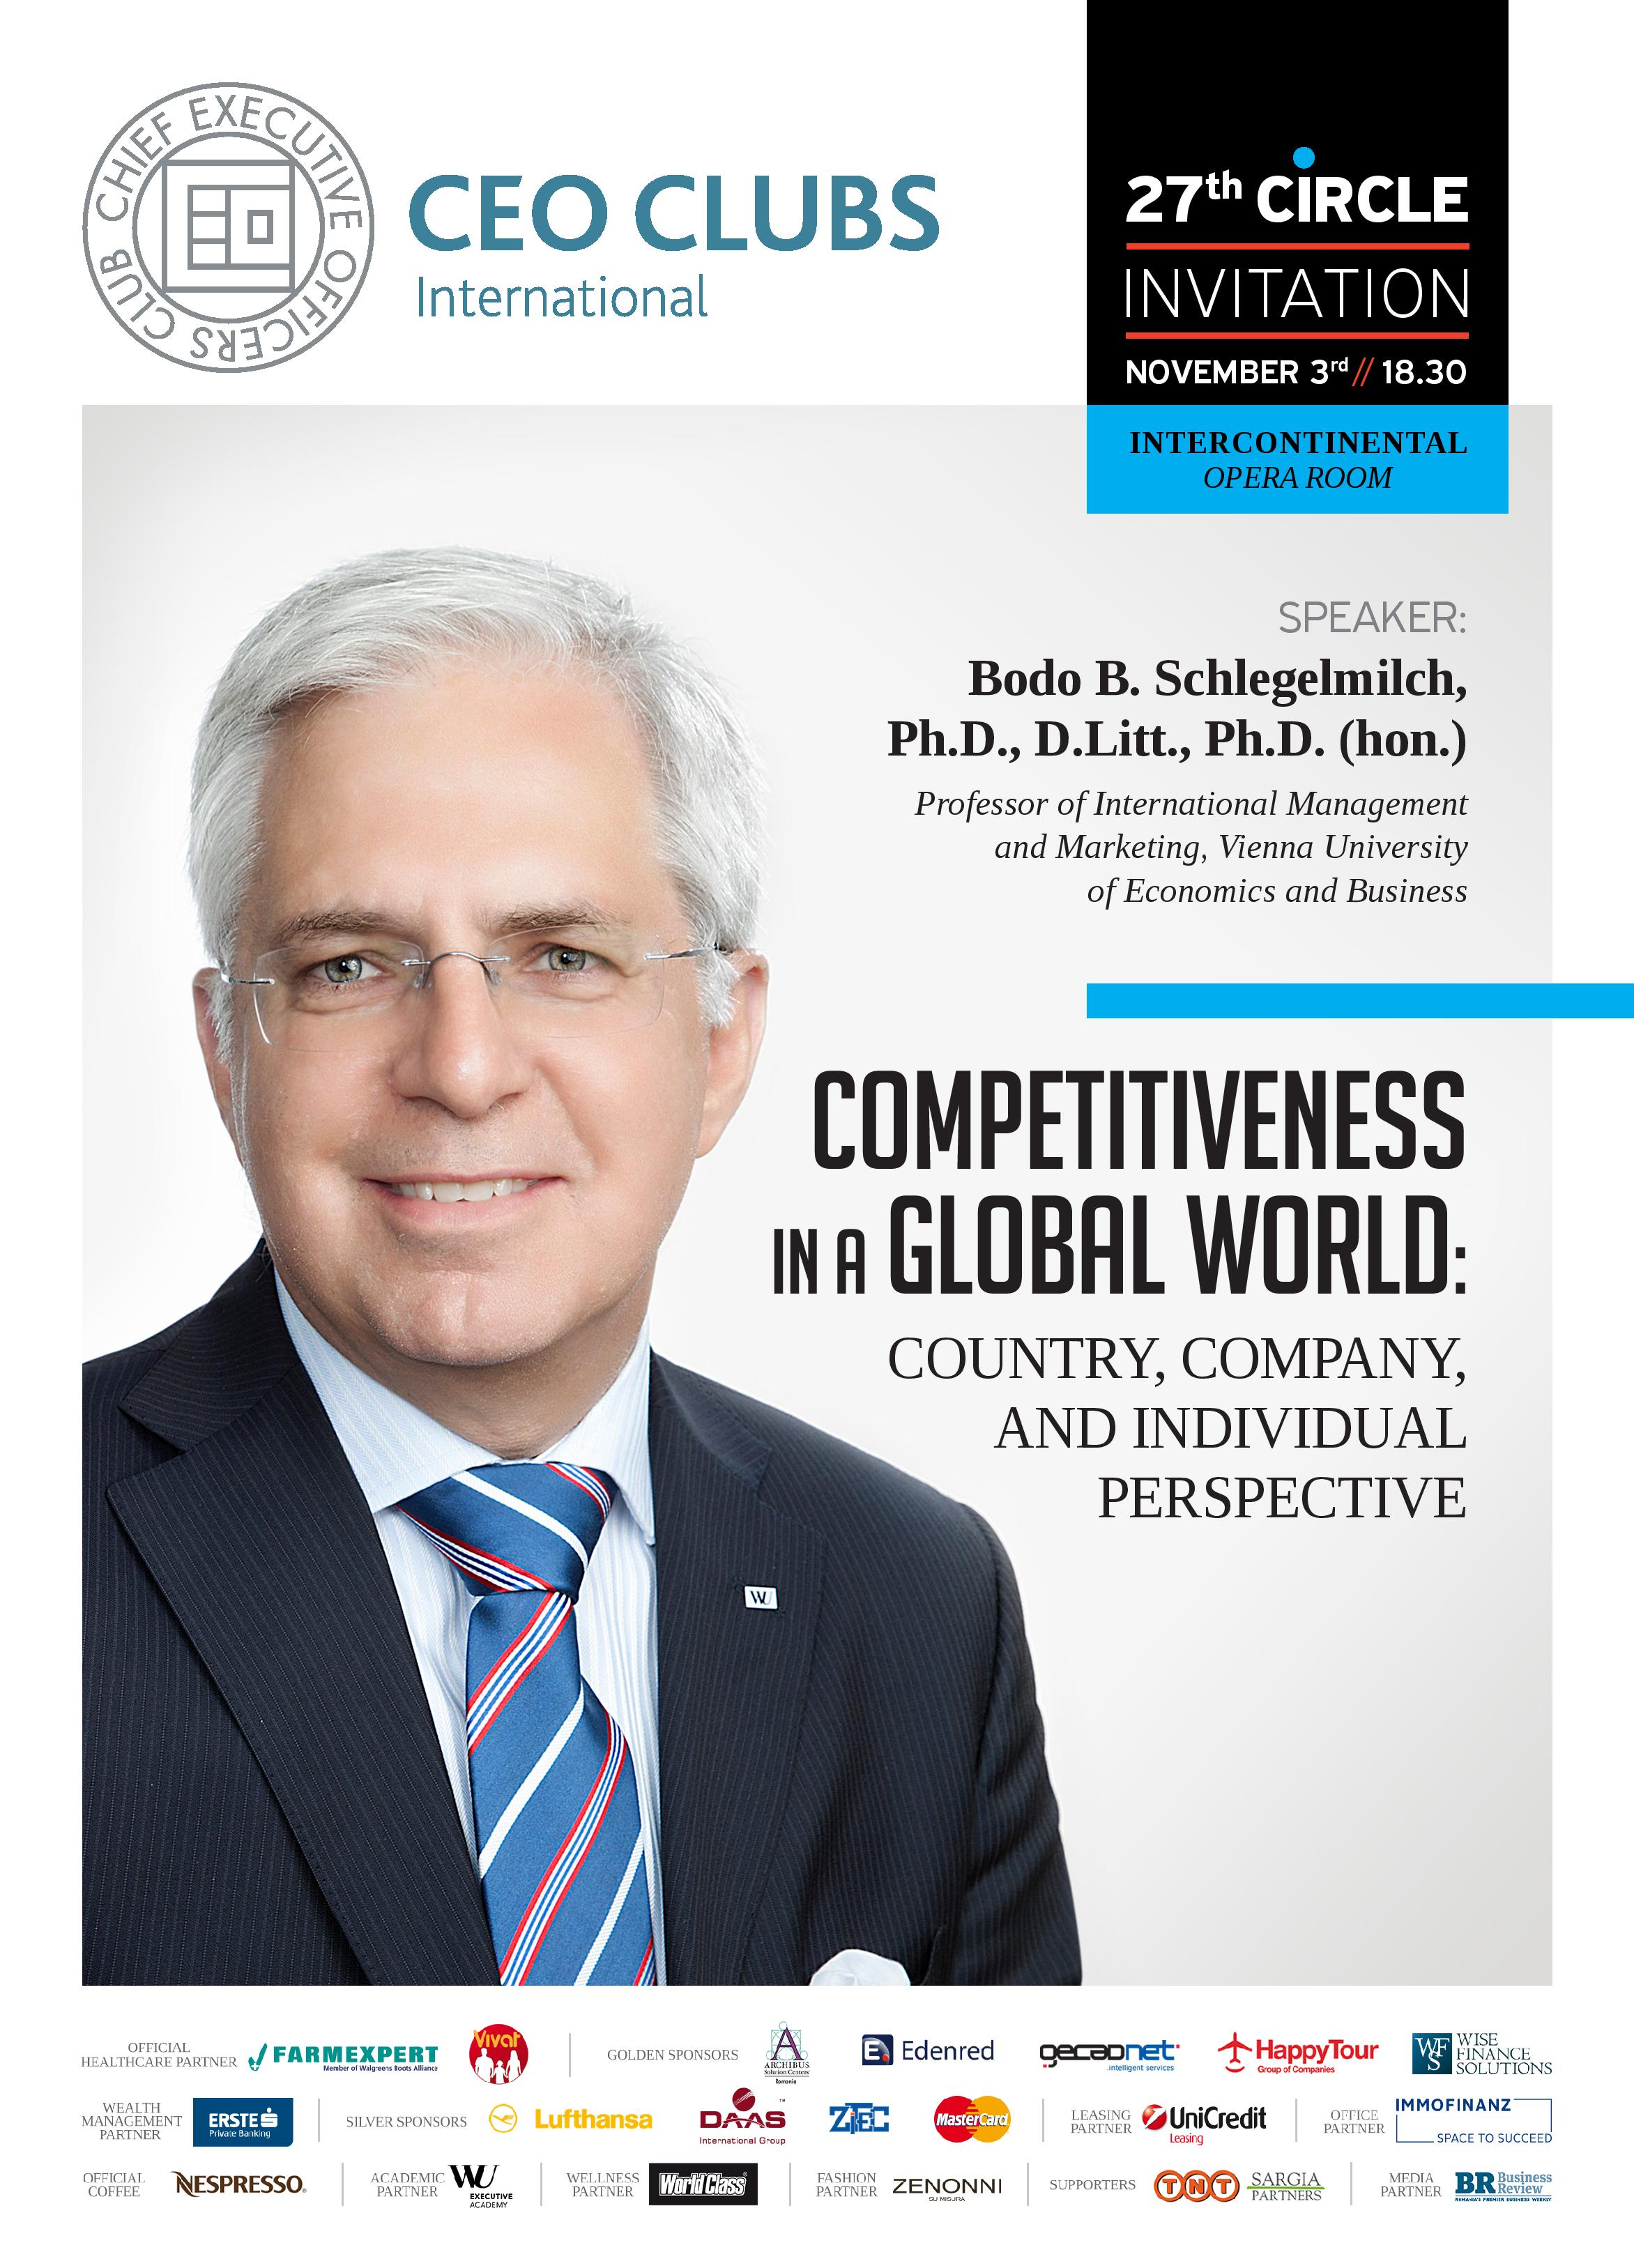 27th Circle: Competitiveness in a Global World